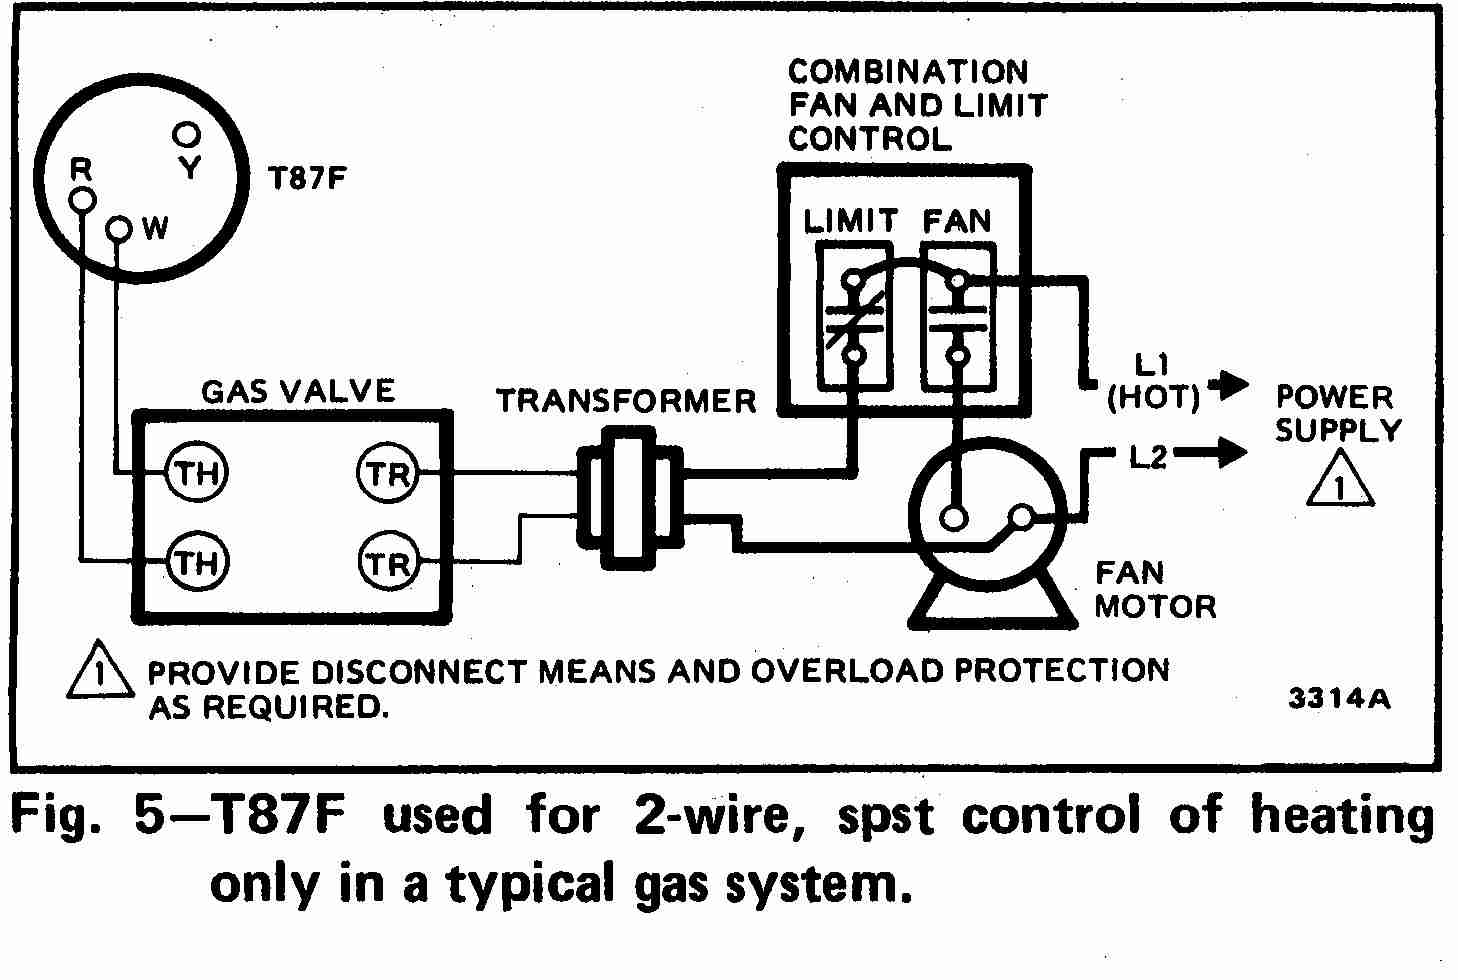 TT_T87F_0002_2Wg_DJF guide to wiring connections for room thermostats williams fan coil unit wiring diagram at nearapp.co